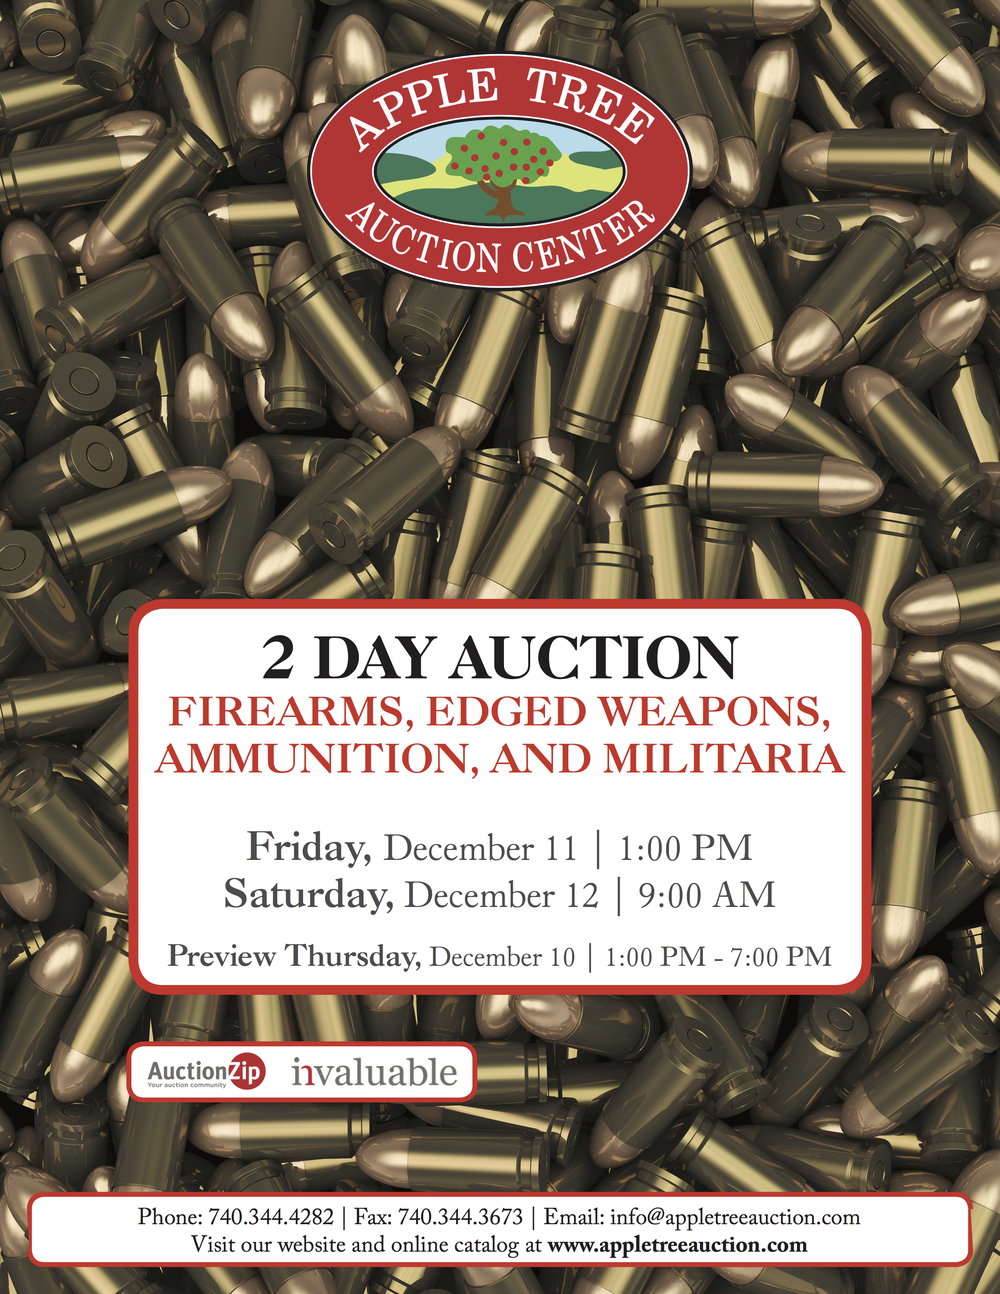 Military & Firearms Dec Auction 15 high res_1.jpg